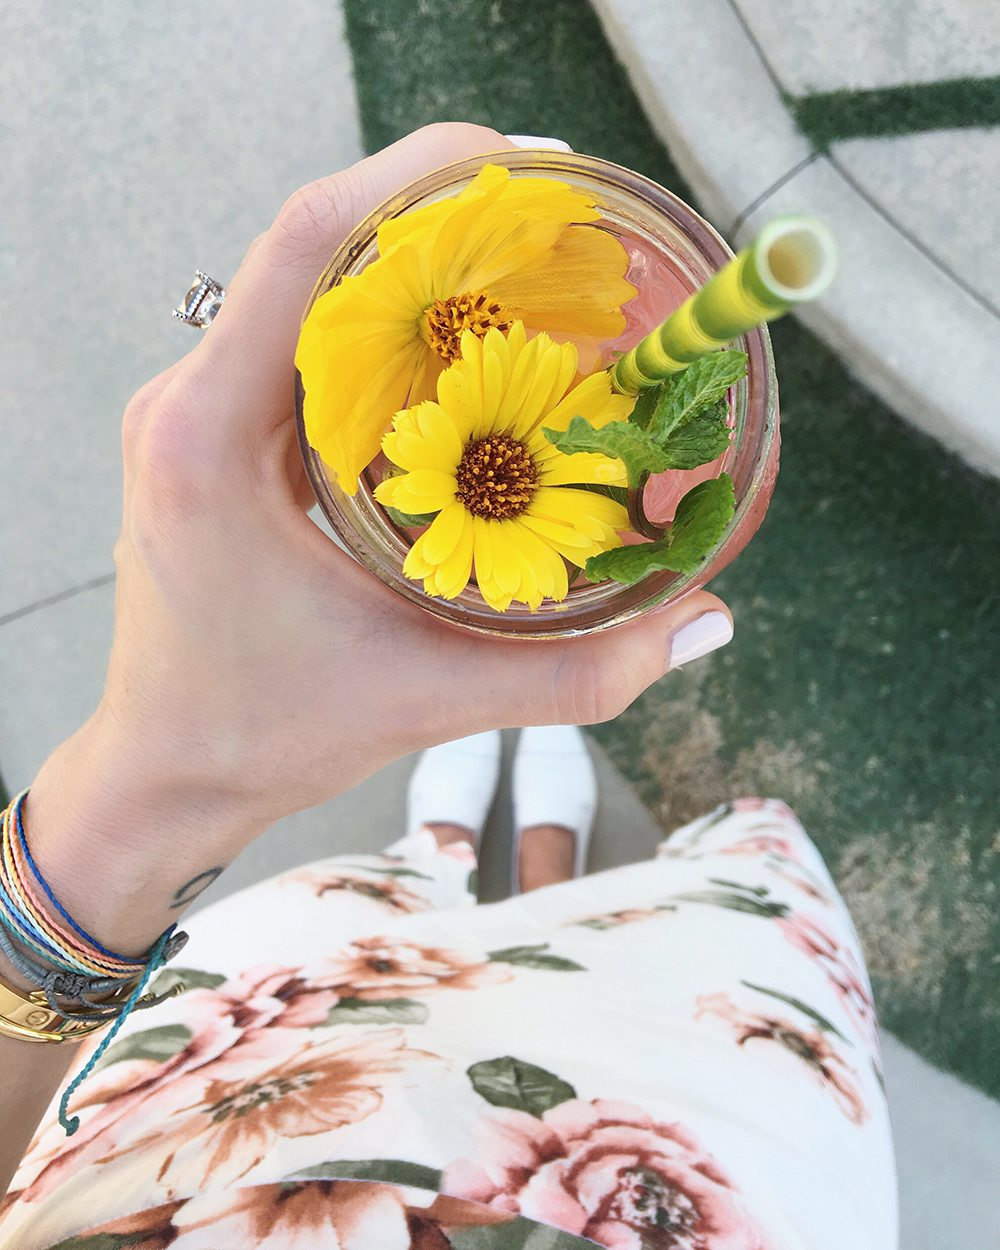 Floral Farms 6 | The Skinny Confidential